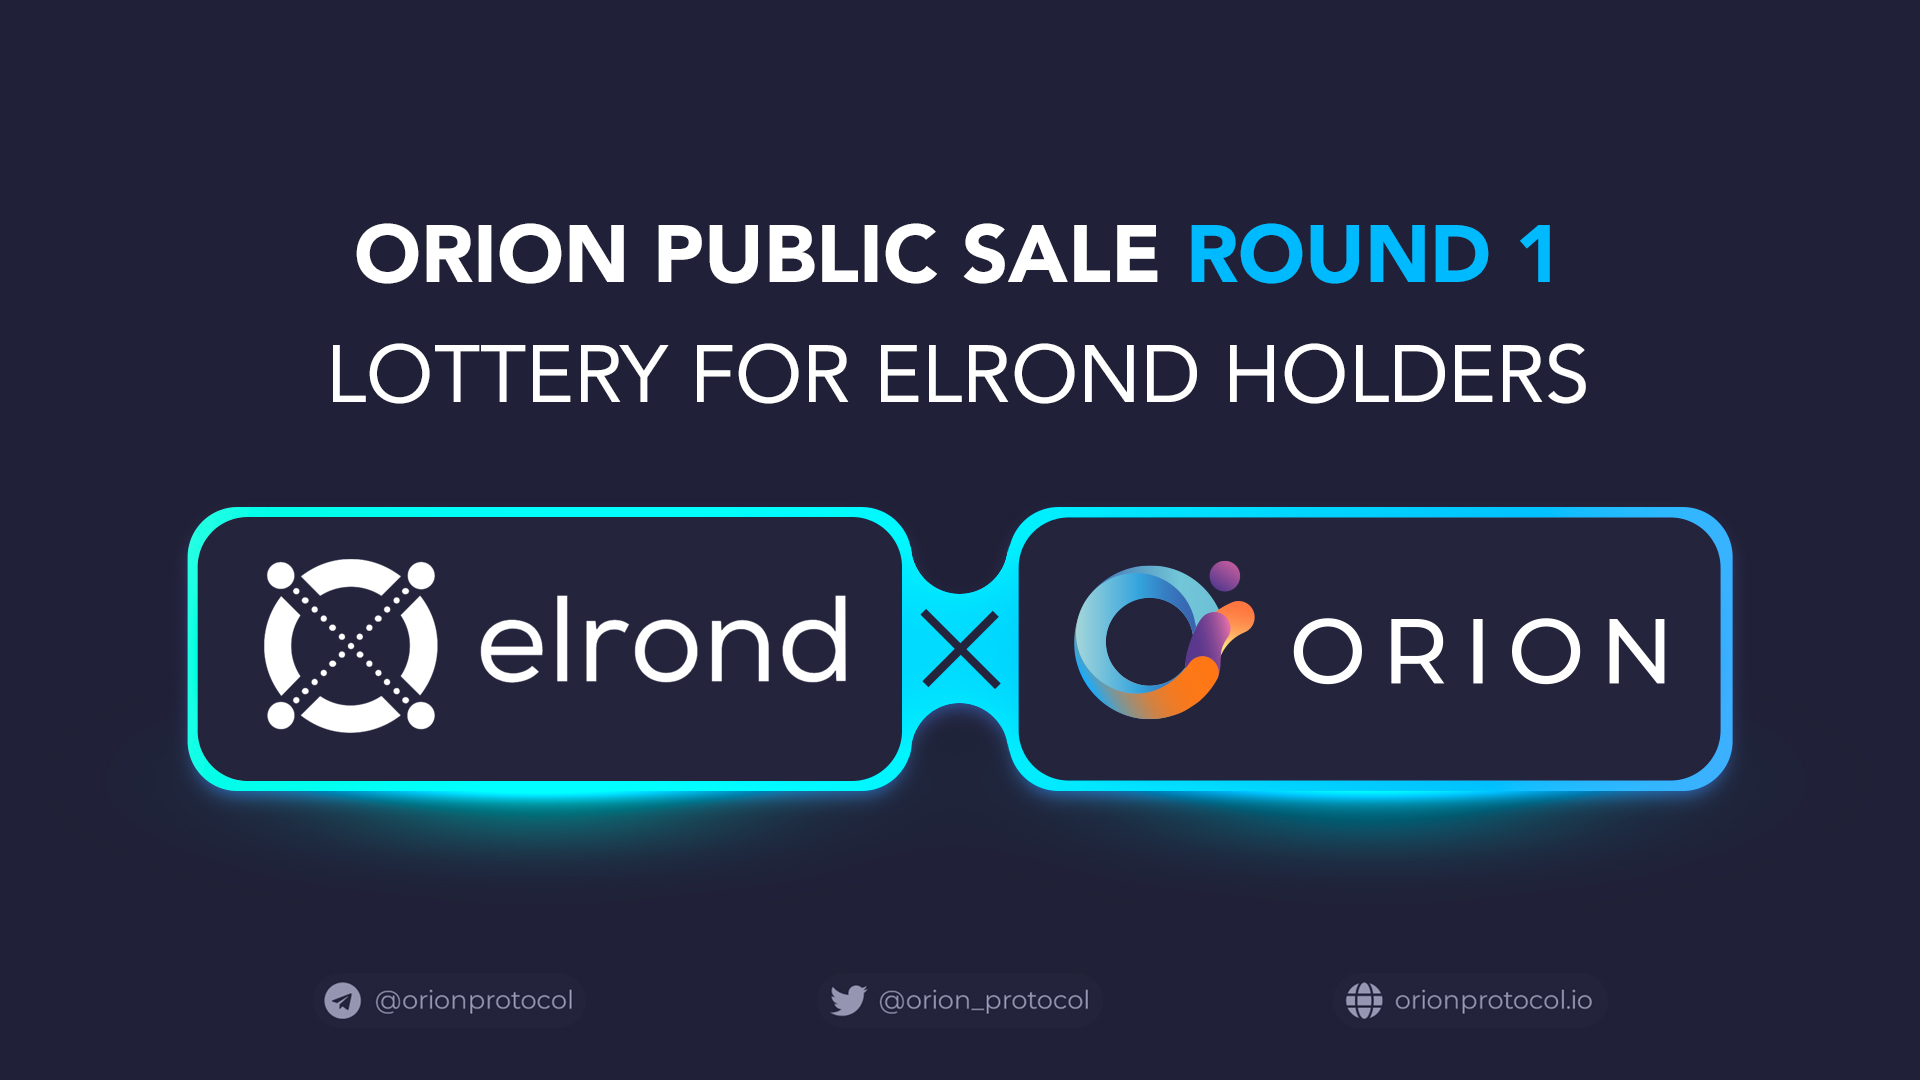 Orion's First Public Round: Elrond Lottery